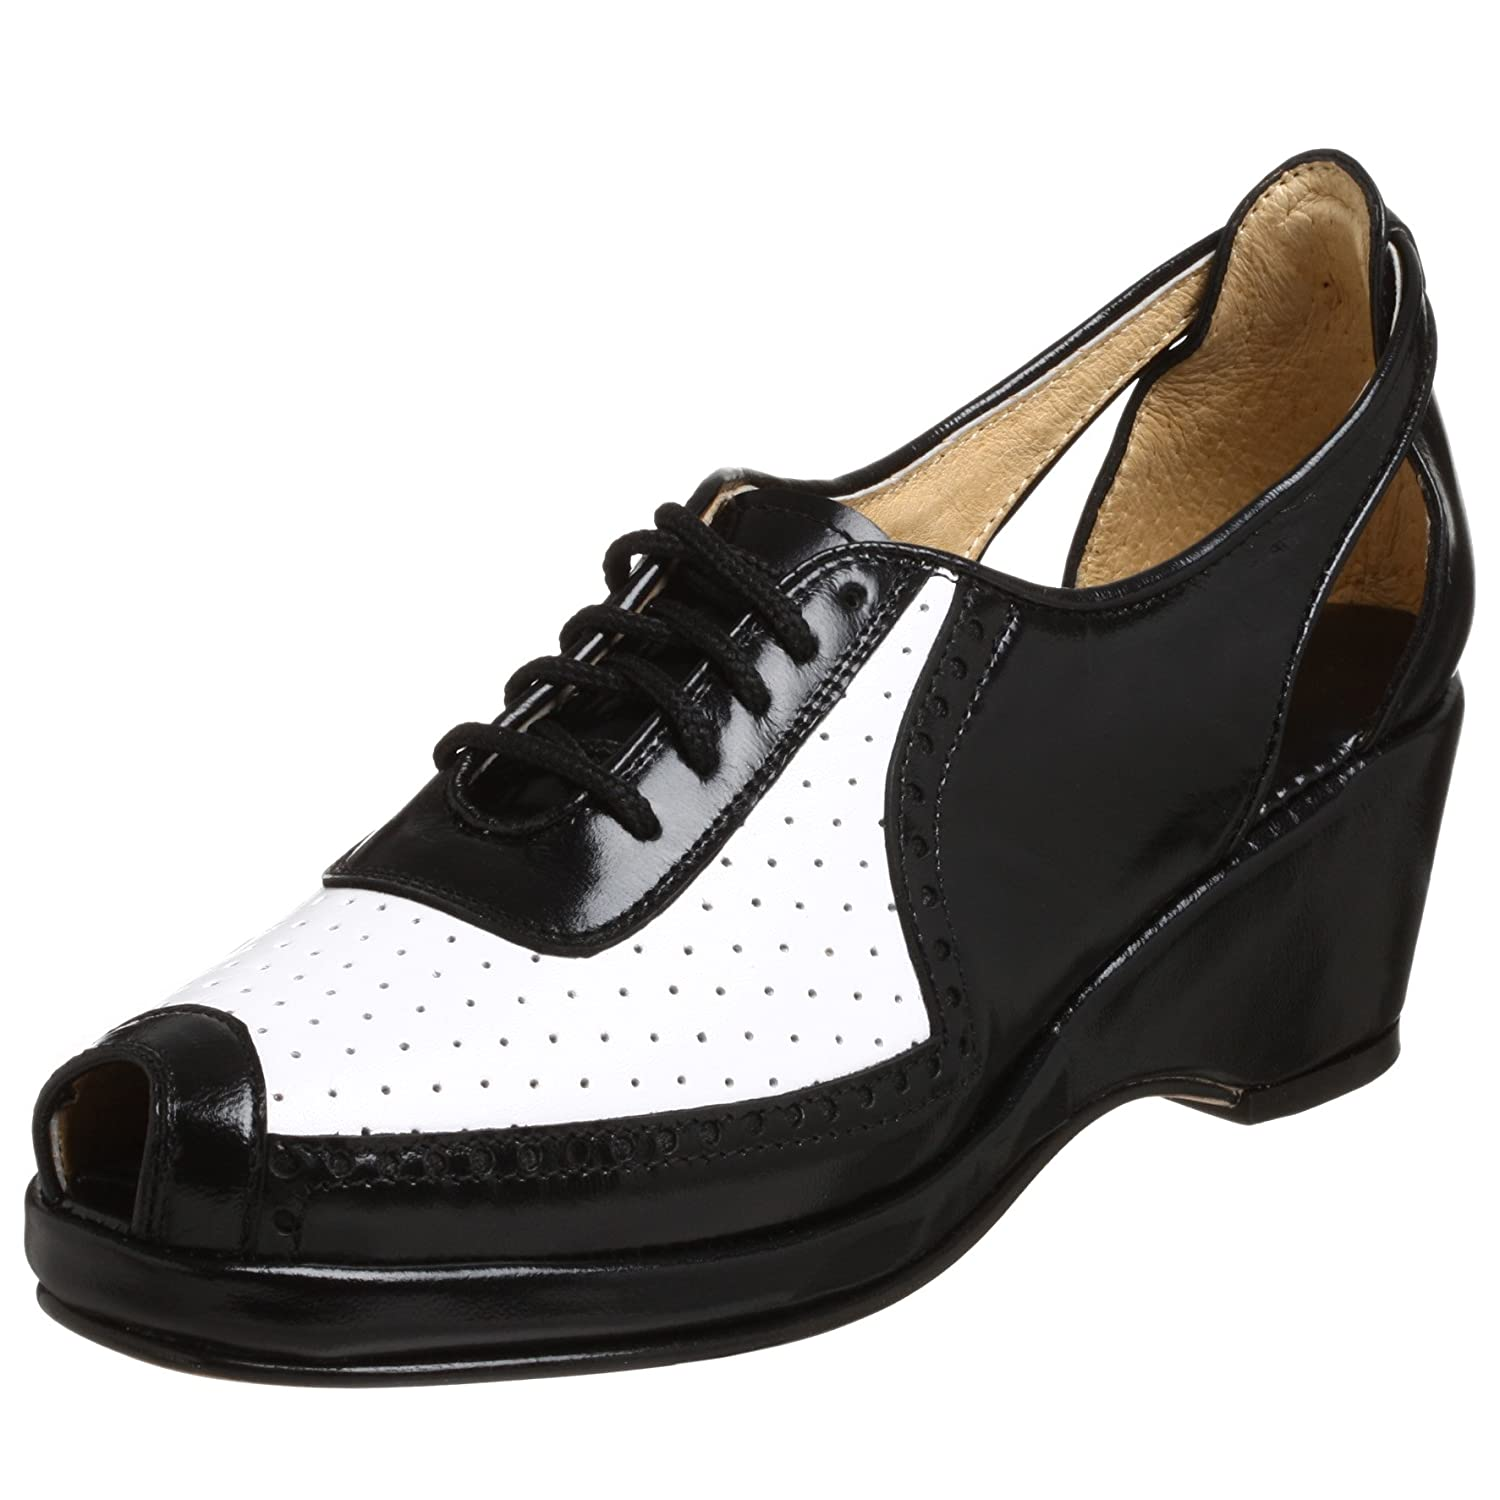 Re-Mix Vintage Women's Spectator Pump - Free Overnight Shipping & Return Shipping: Endless.com :  platform retro leather sole vintage